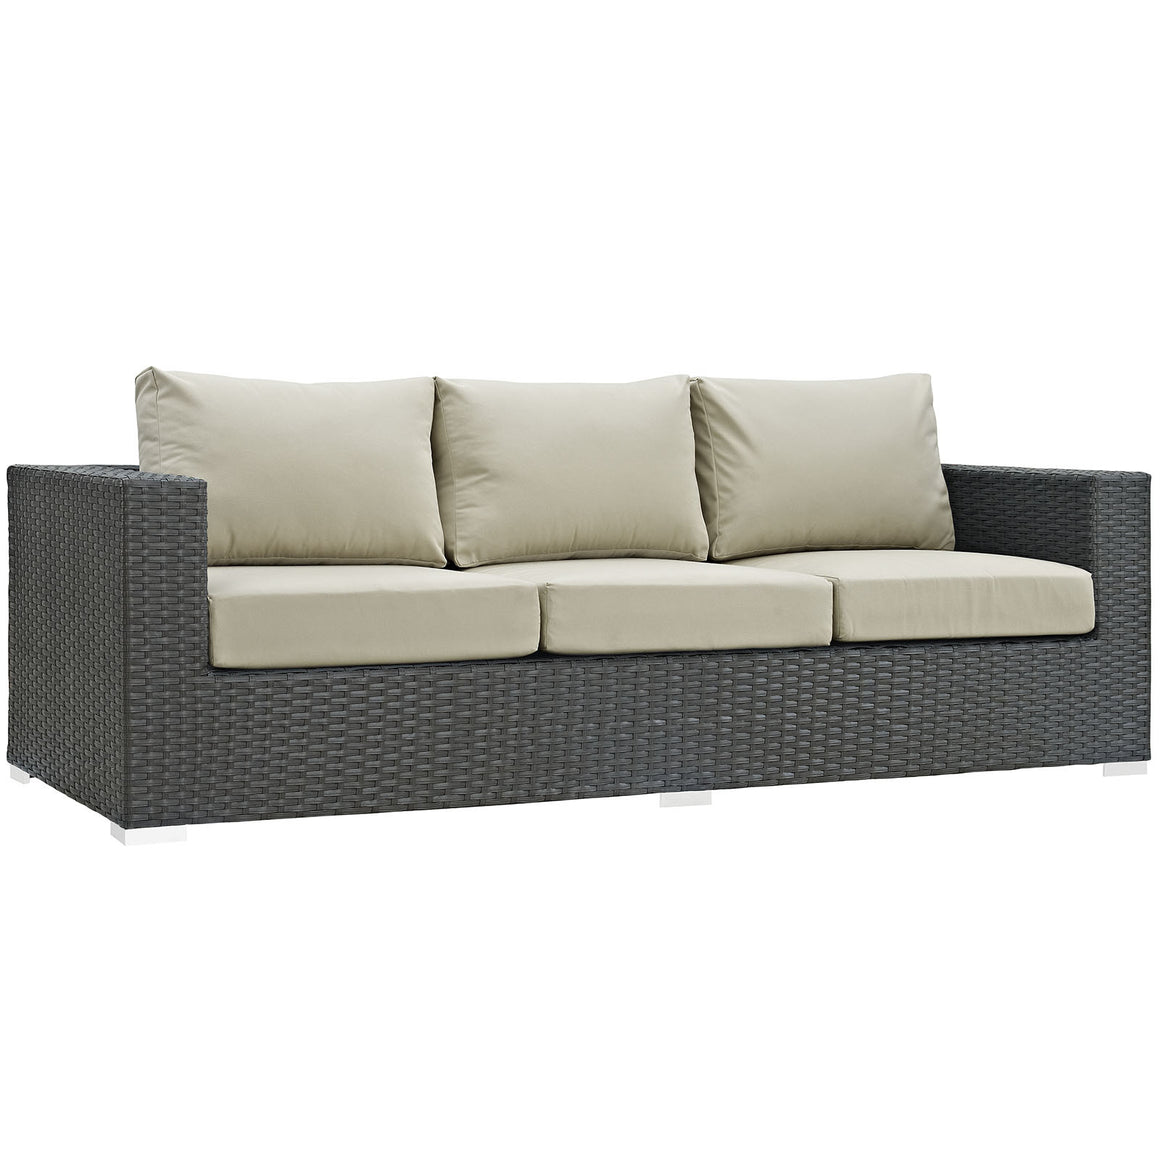 Sojourn Outdoor Patio Sofa